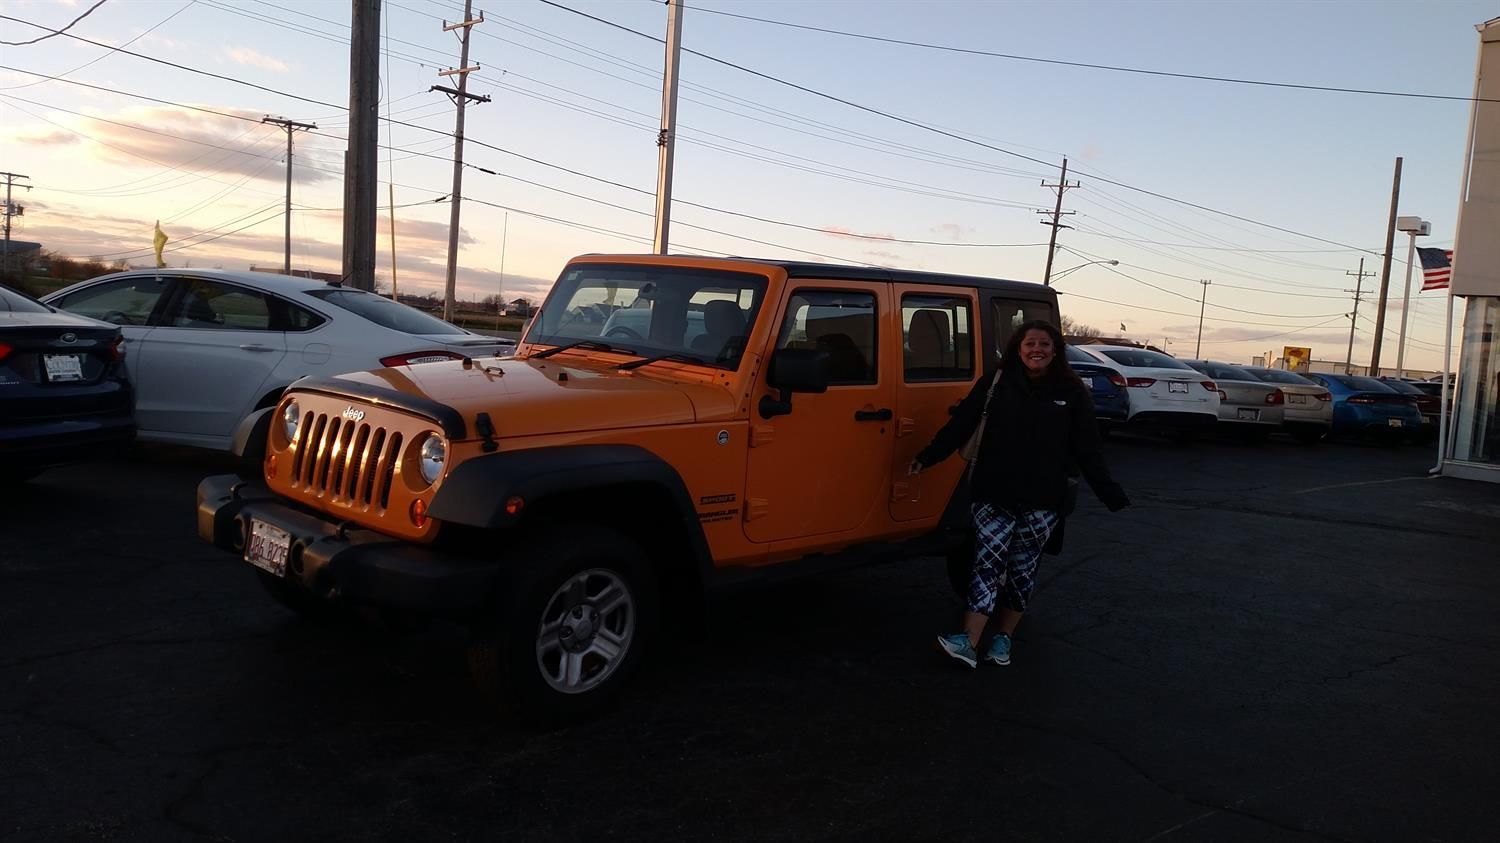 LYNNE's new 2012 Jeep Wrangler! Congratulations and best wishes from Kunes Country Auto Group of Sterling and Scott Bice.